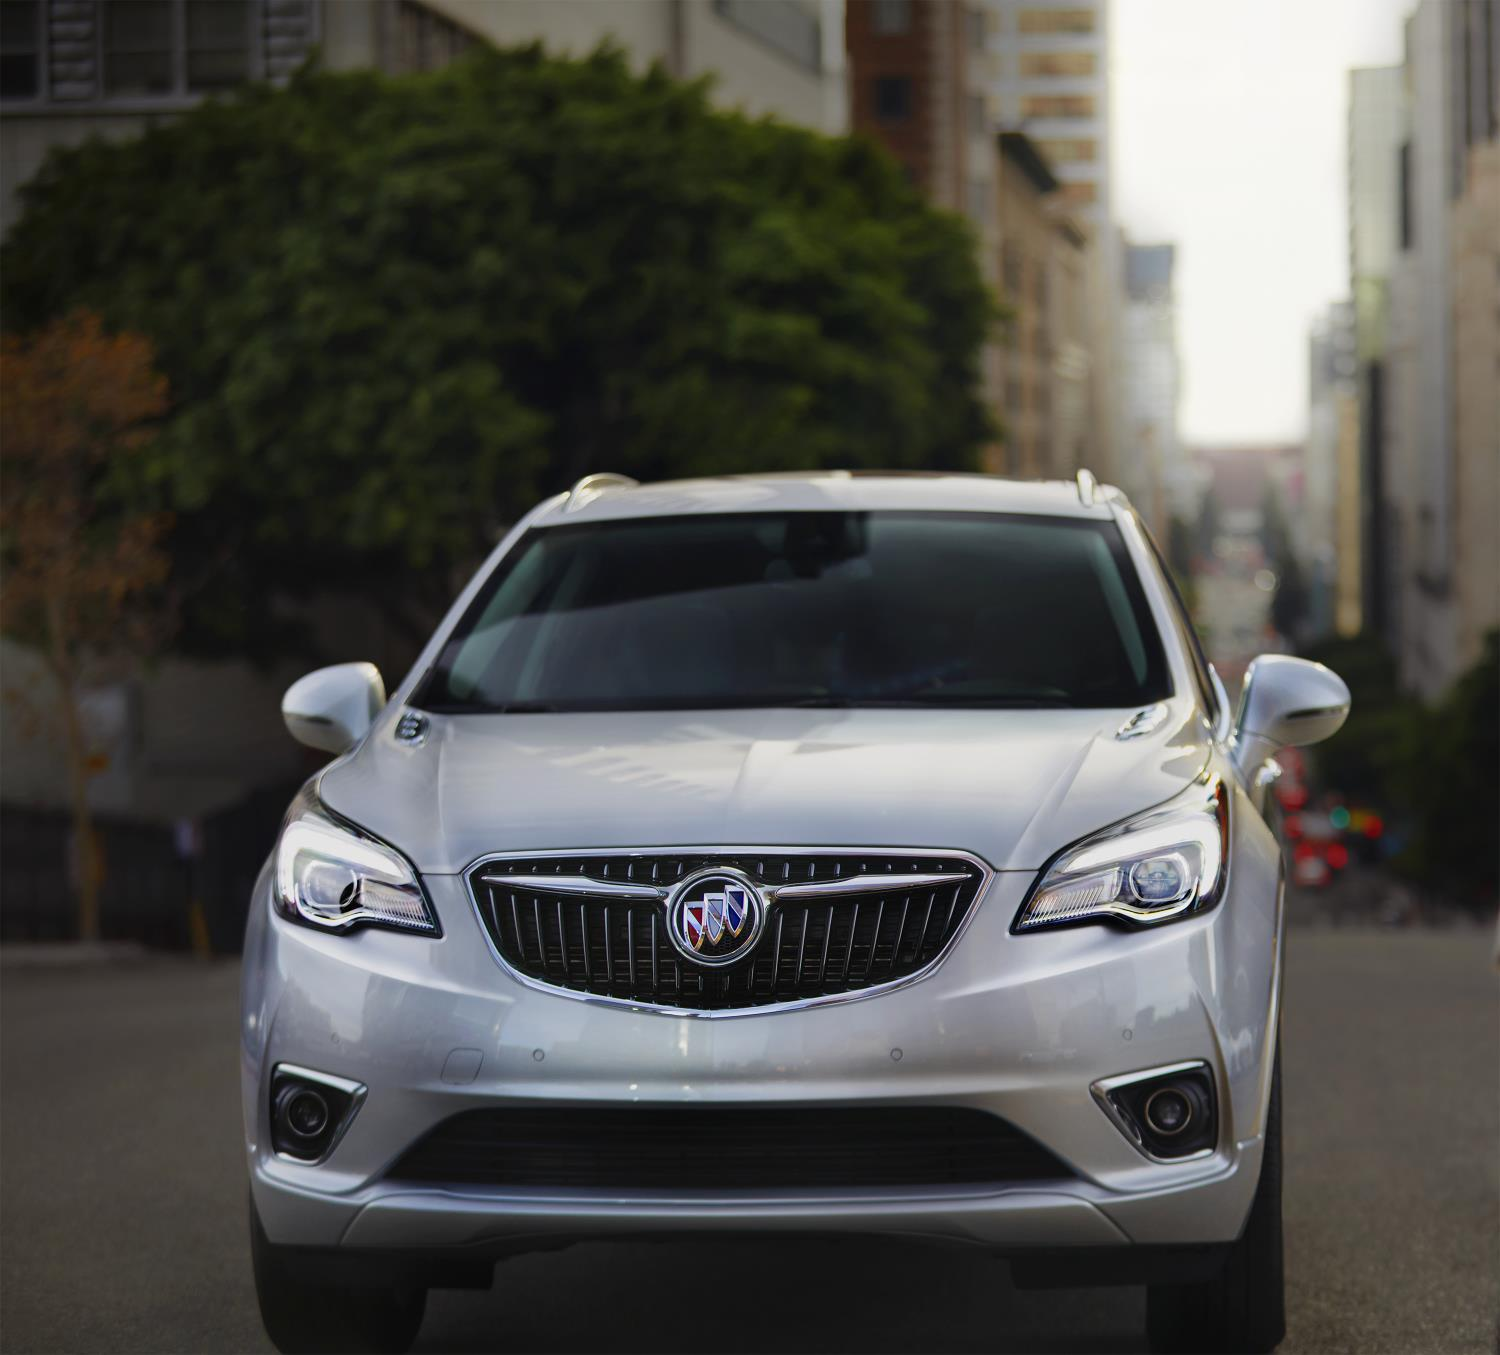 Buick Hybrid Suv: 2019 Buick Envision